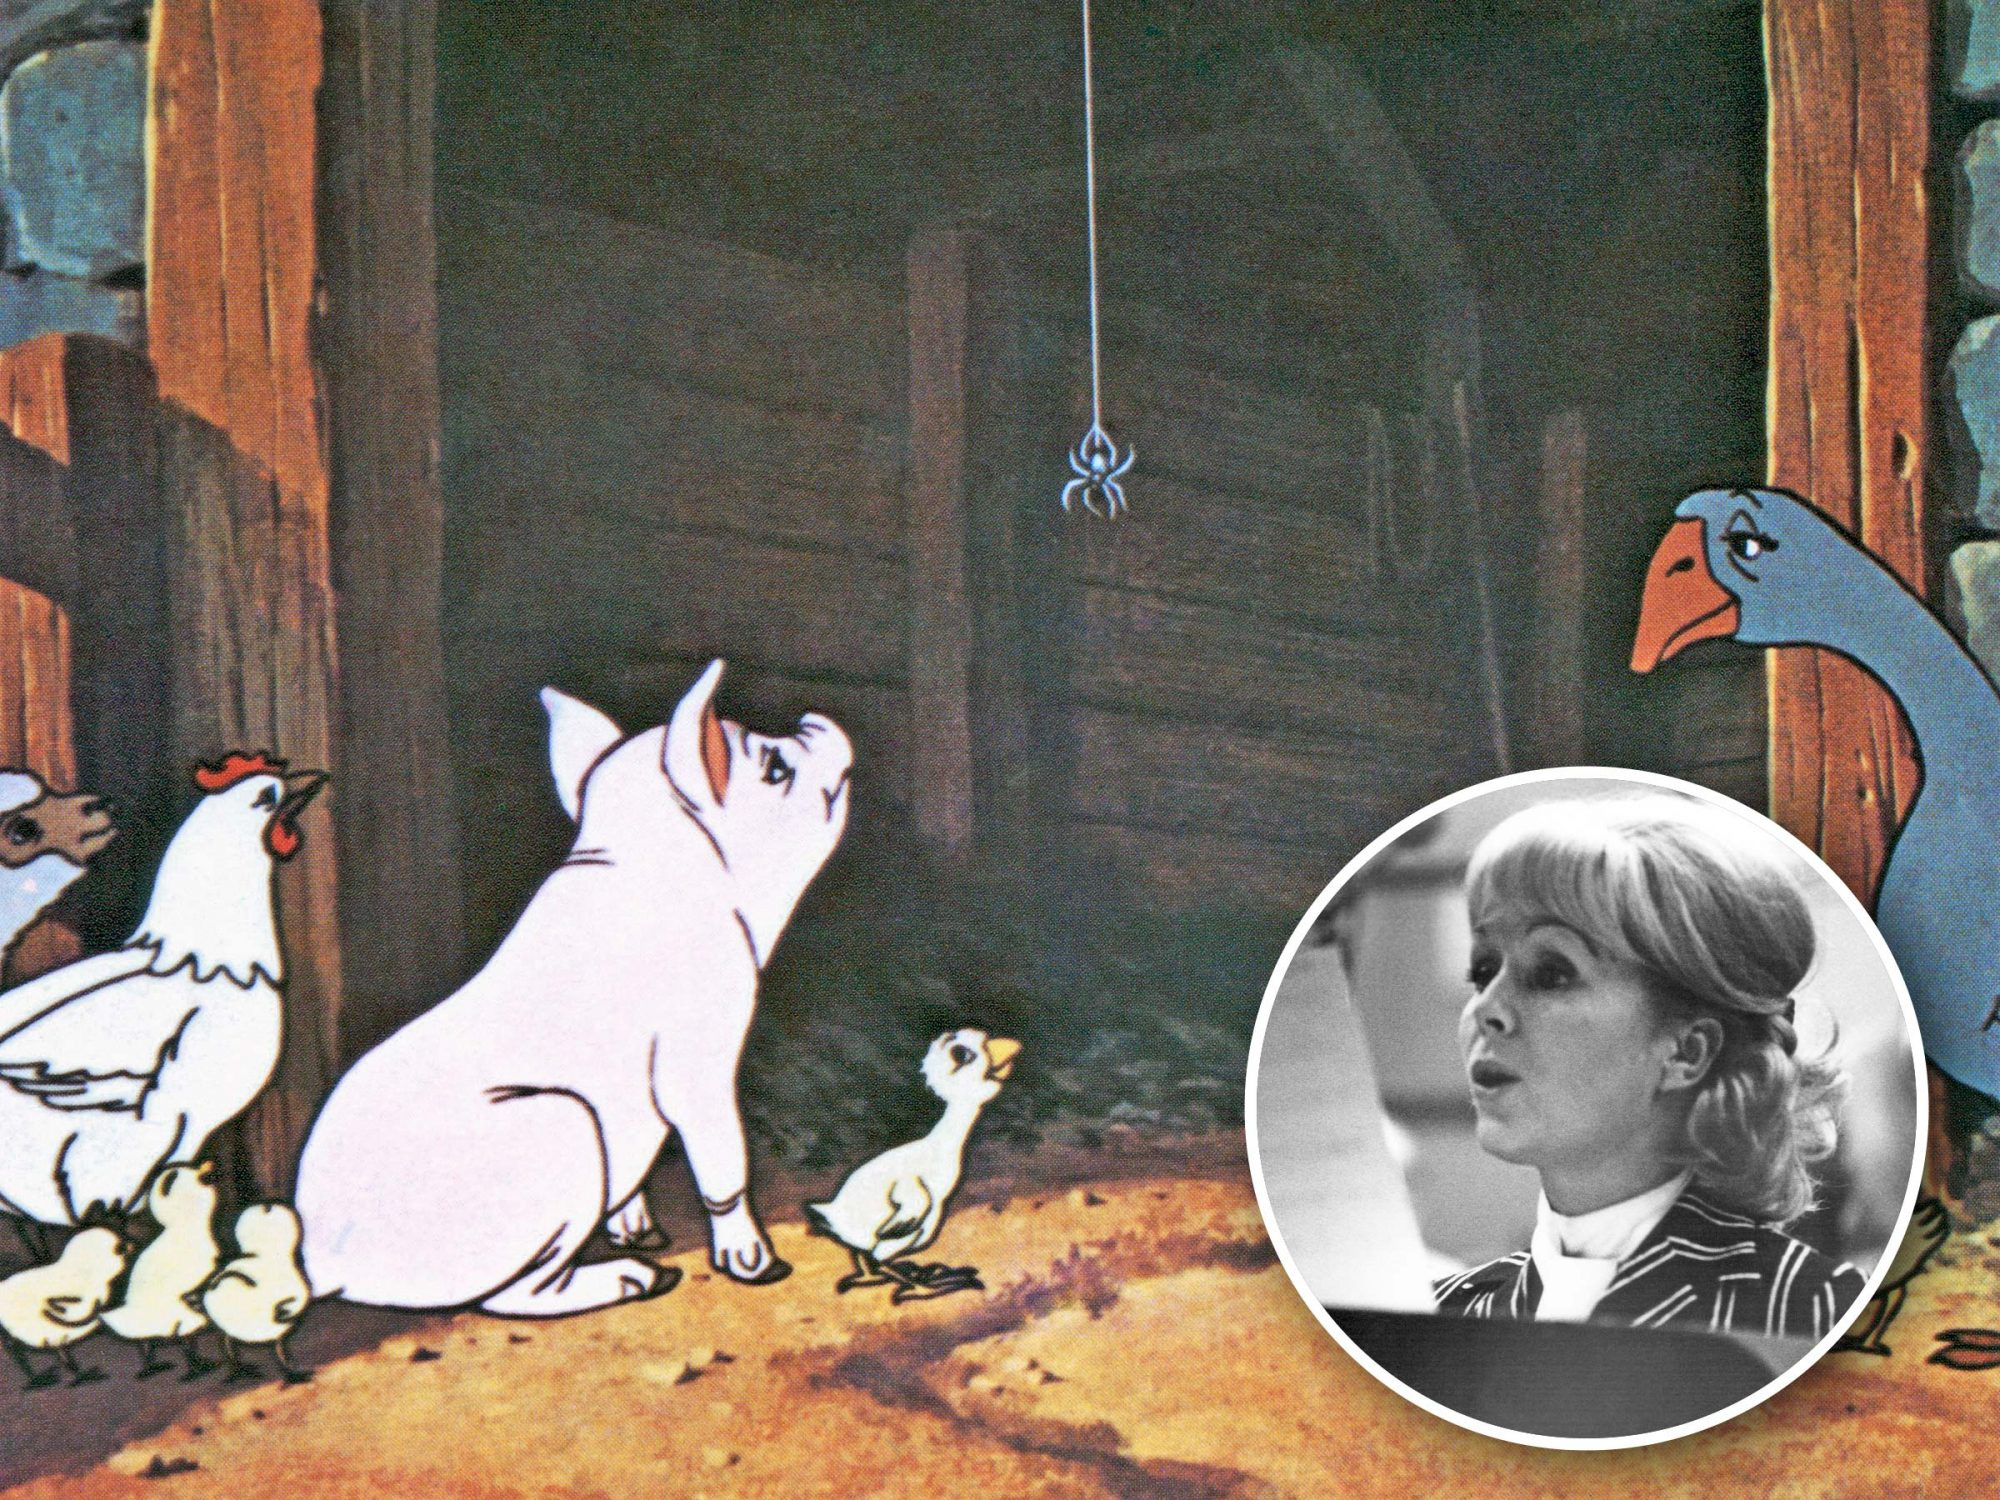 Revisit Debbie Reynolds' beautiful performance in 'Charlotte's Web'